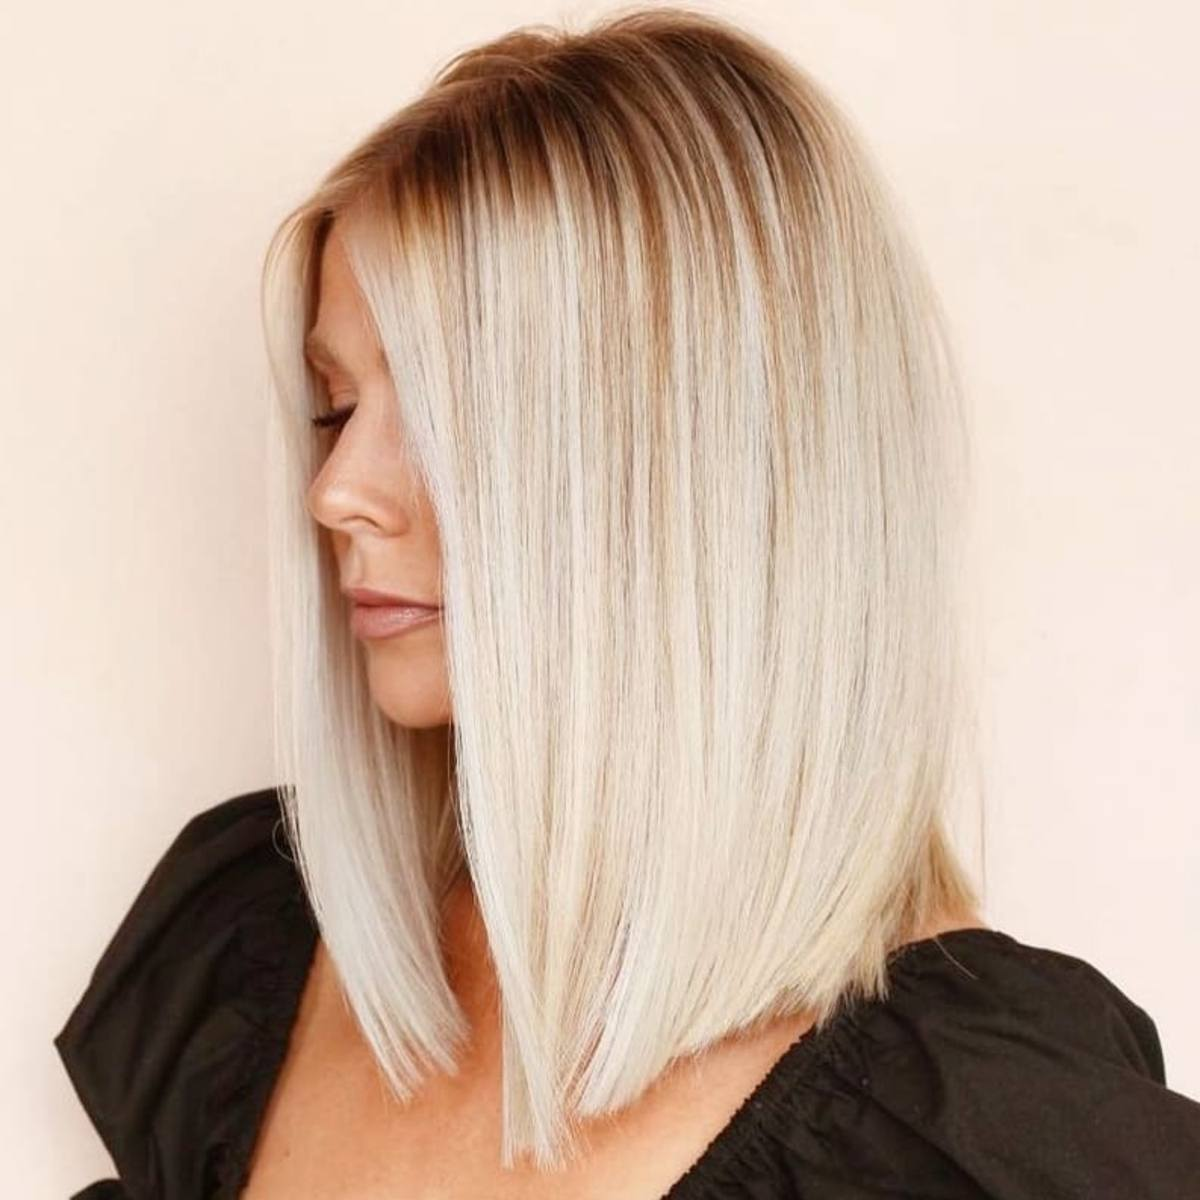 Lob on straight blonde hair with dark roots